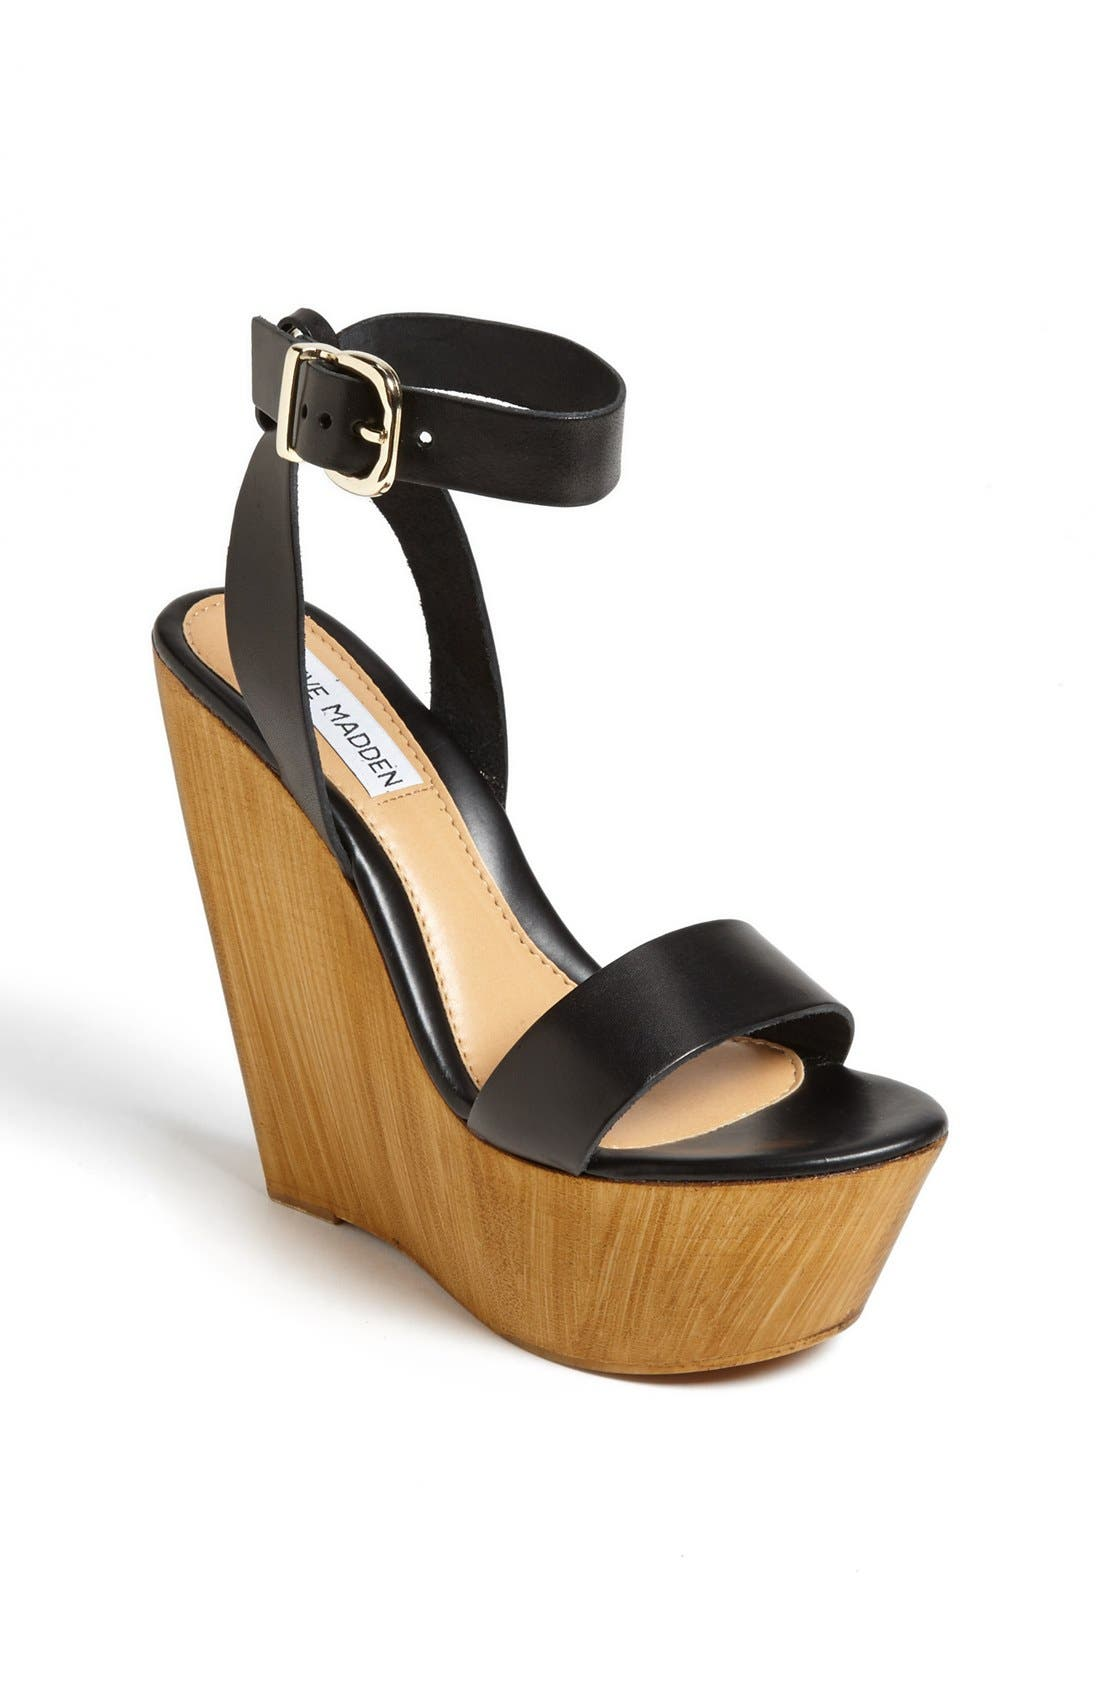 Main Image - Steve Madden 'Beachy' Wedge Sandal